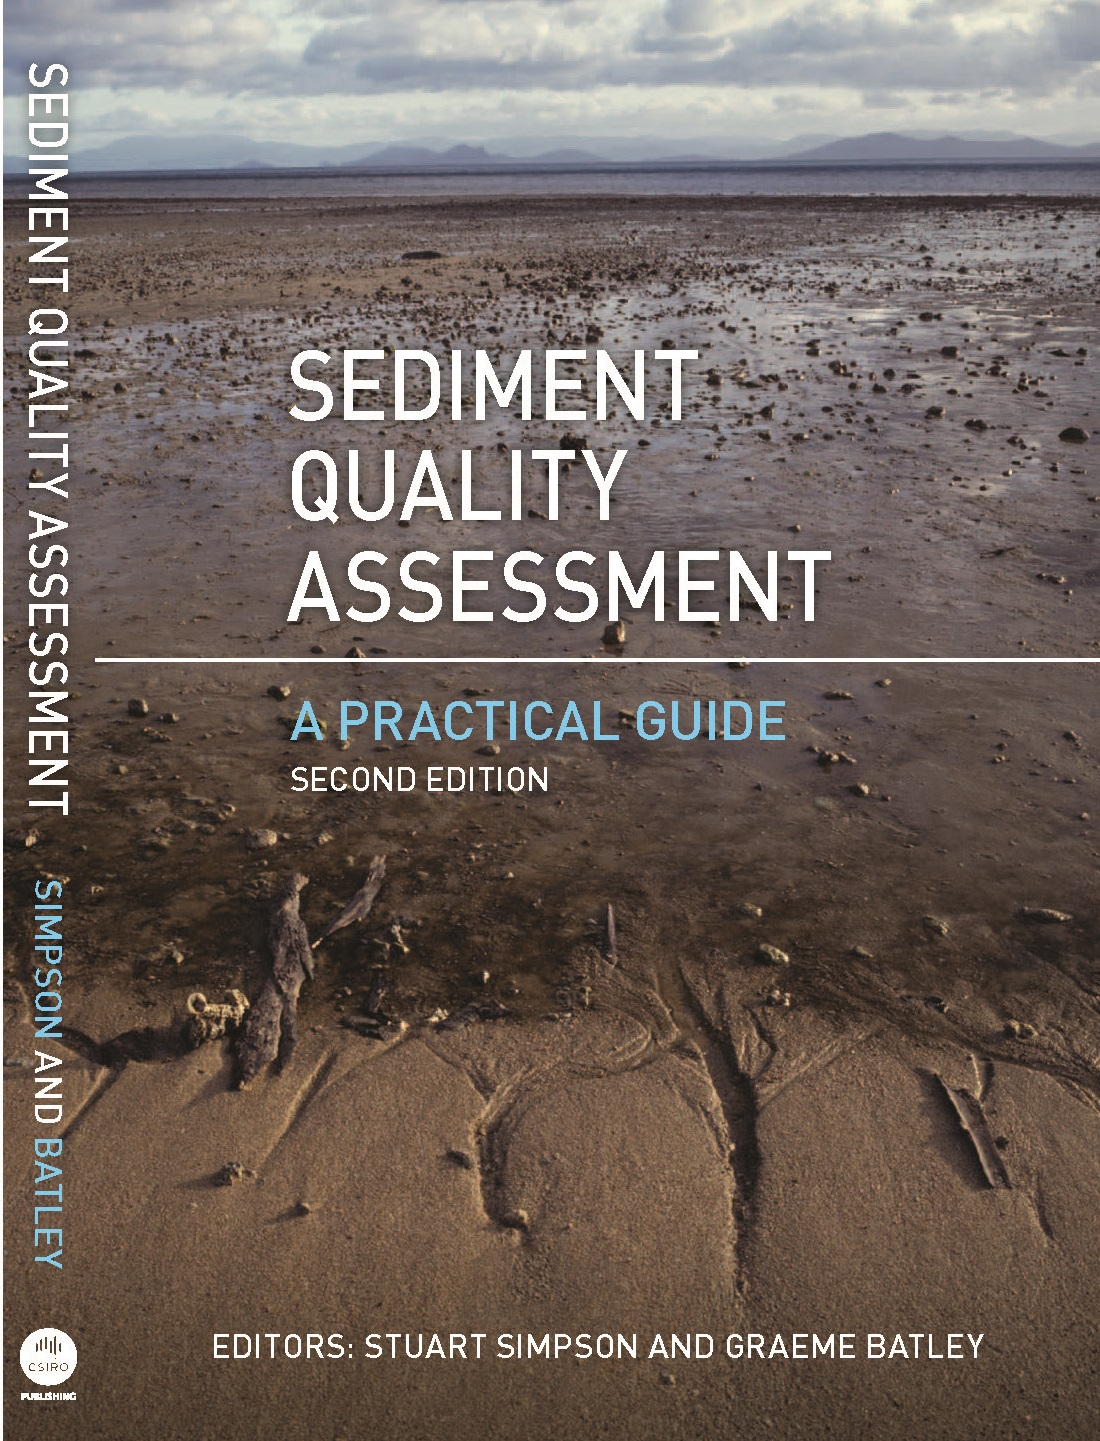 Front cover of the book: Sediment quality assessment — A practical guide, second edition.